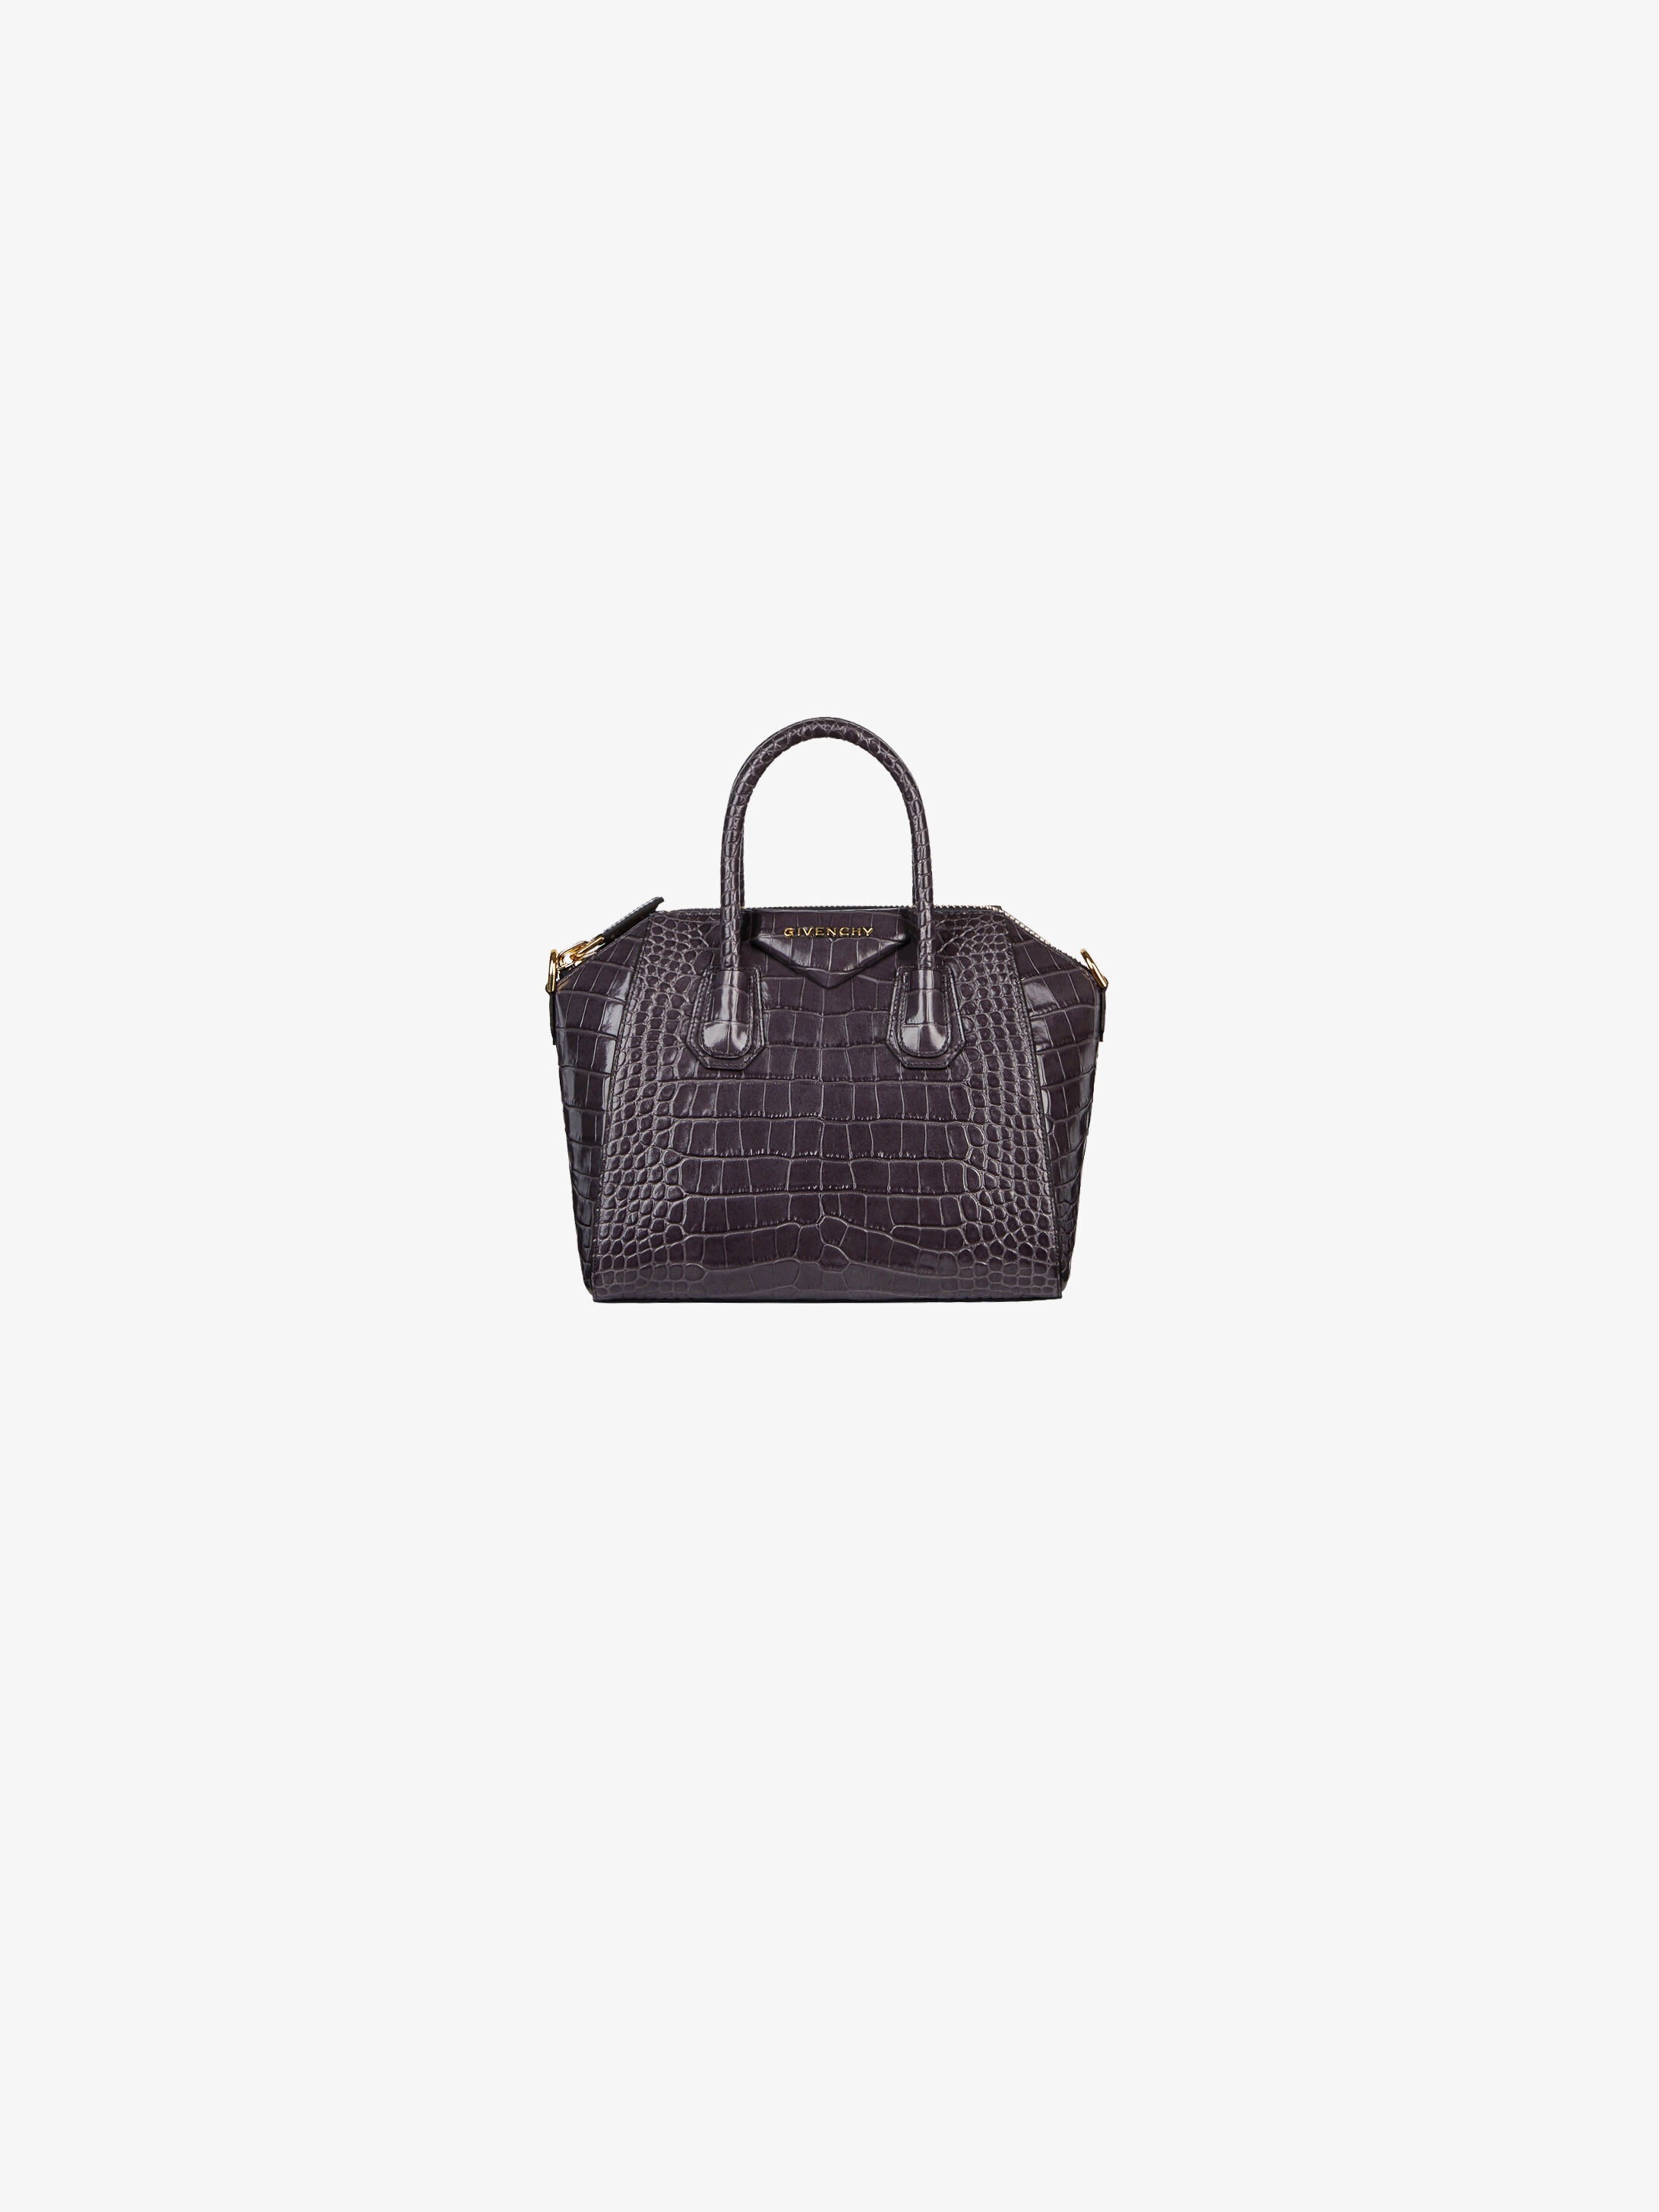 Paris Women's Handbags Collection By GivenchyGivenchy 0N8OPkwnX